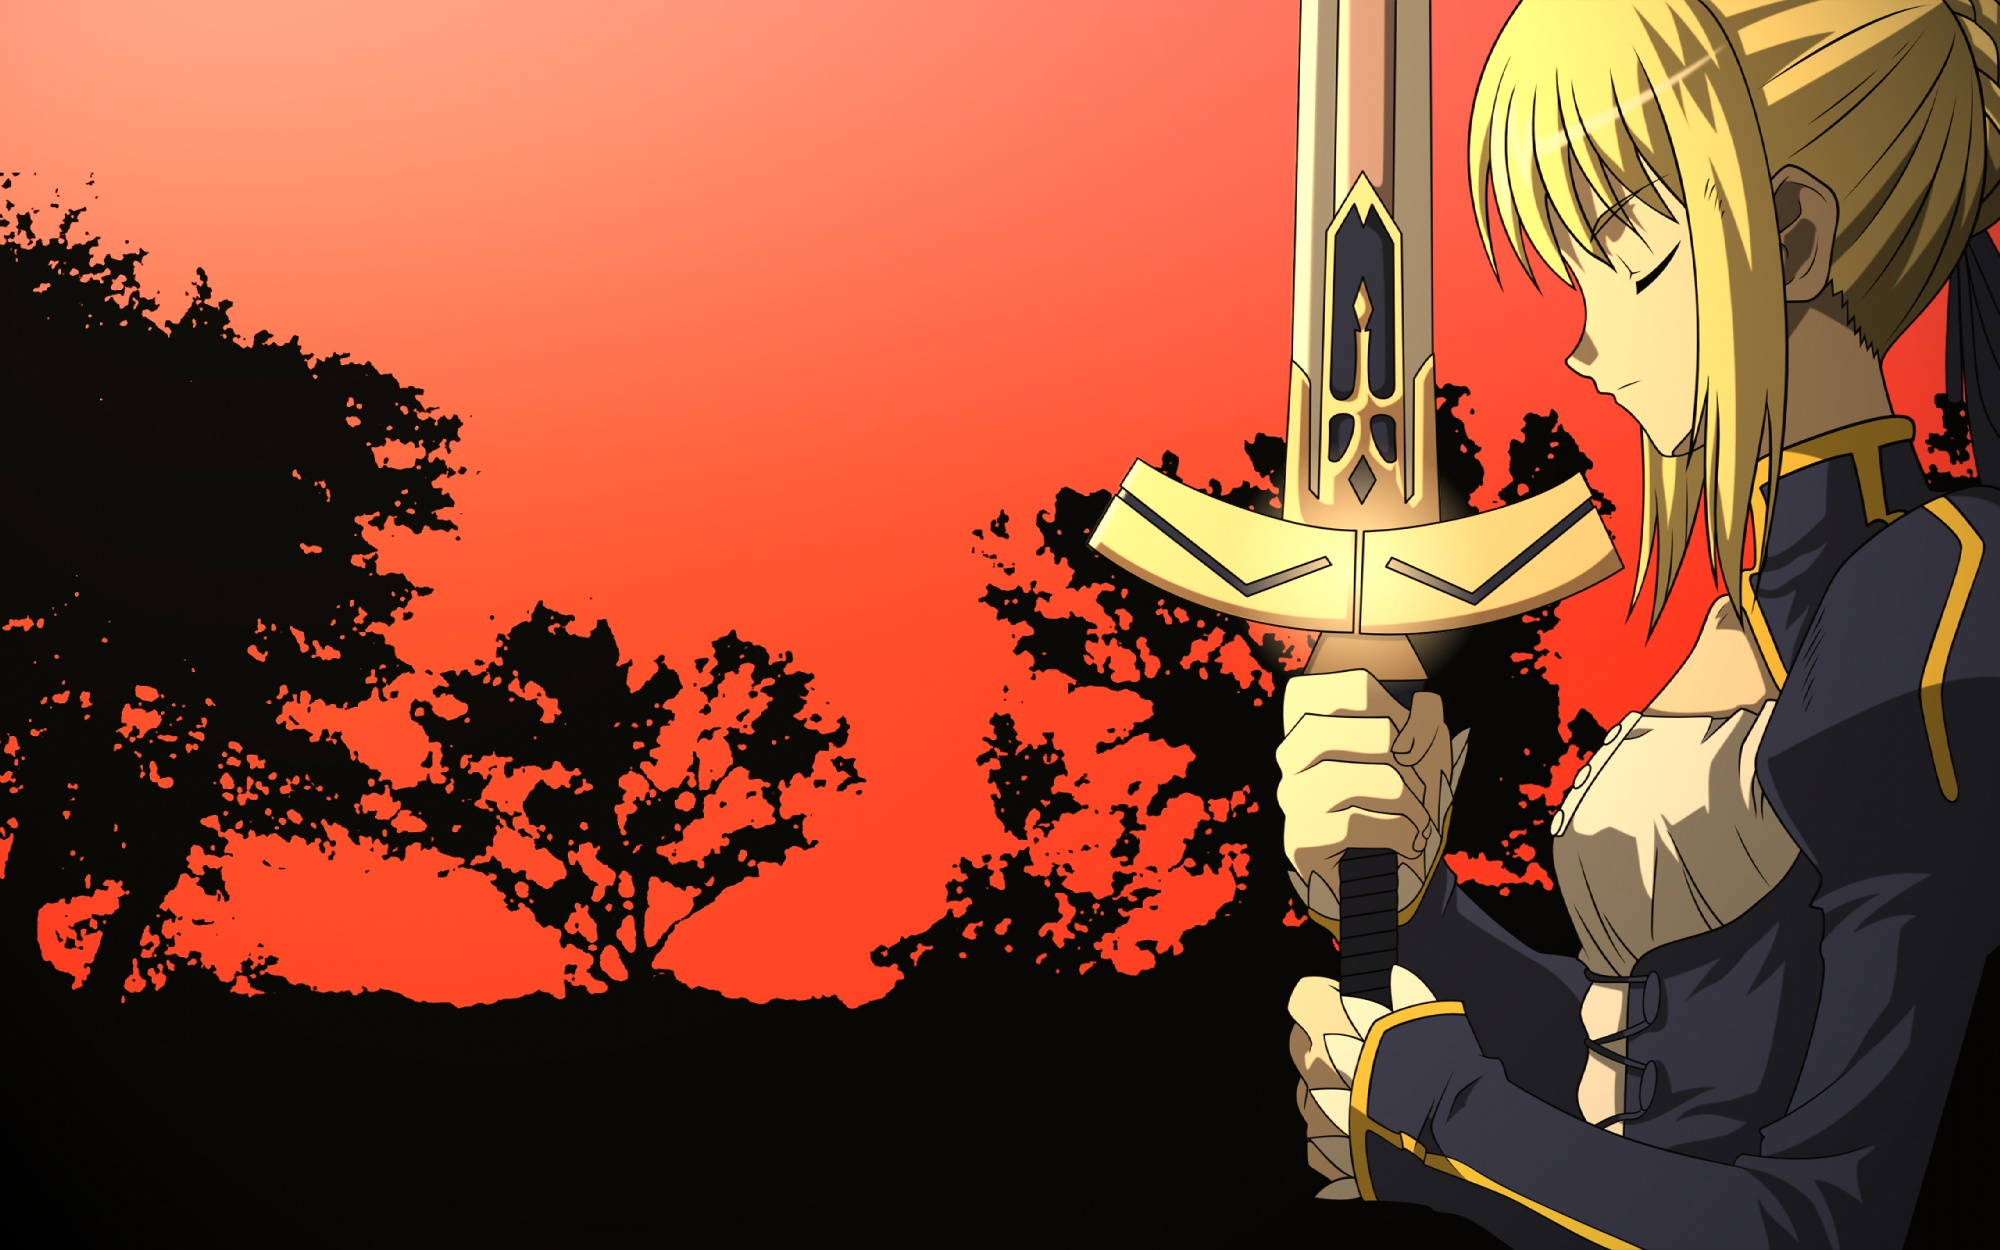 fate/stay_night saber sword weapon